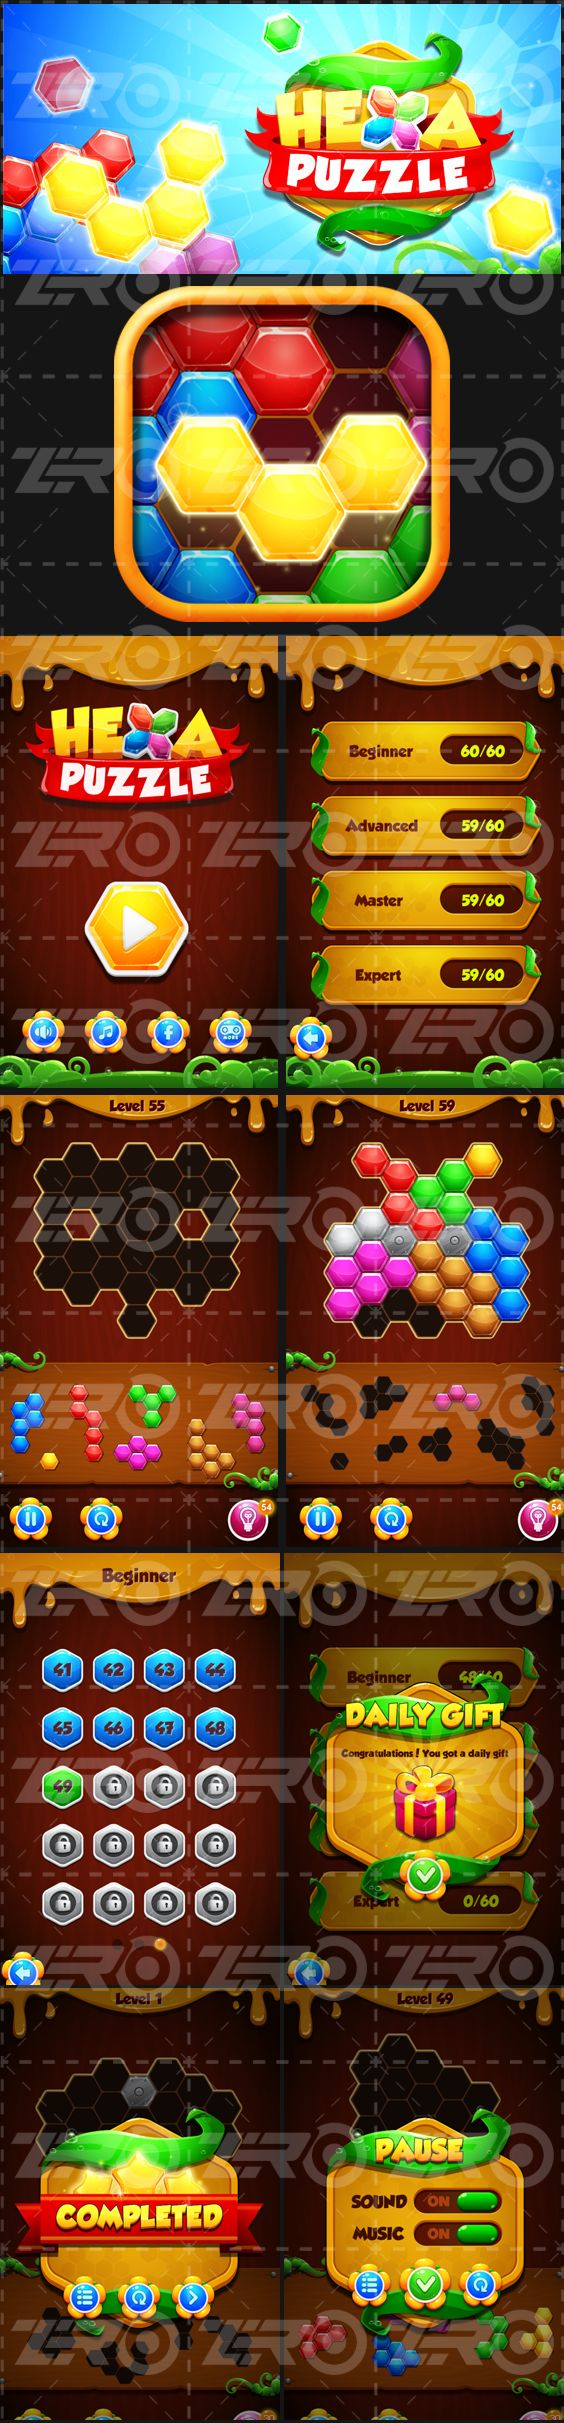 Hexa Puzzle - Block Mania game UI design on Behance